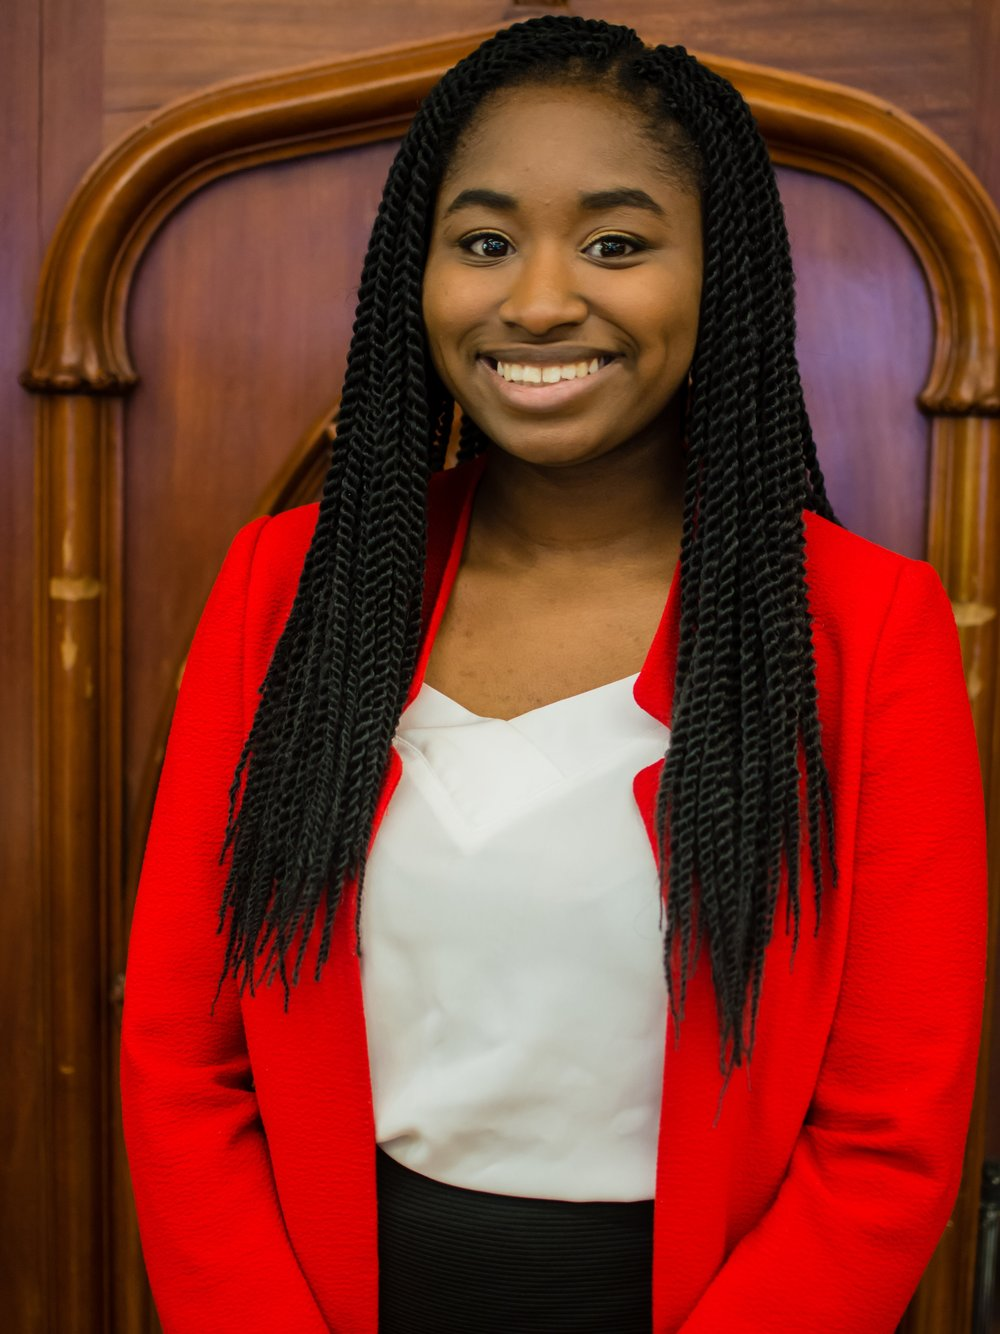 Hawa Maiga -USG Public Relations - Meet Hawa, your Director of Public Relations for McMUN 2019! Born and raised a Montreal local, Hawa went to Marianopolis College in Honors Health Science, during which she found her passion in International Relations and Diplomacy after attending McMUN twice as a delegate. In her first year at McGill, Hawa served as the Food & Local Sponsorship Coord for McMUN 2018 and represented McGill at BarMUN and NaMUN, taking home a Best Delegate award. Today, she's in her second year of pursuing a degree in International Development Studies and Political Science at McGill University, where she serves as the President of Amnesty International to best fulfill her passion for Human Rights and Development. When not in McGill, you can find Hawa working at the municipal library in Ville de Sainte-Catherine, eating Ben & Jerry's with her friends (ask her about the Bernie Sander's flavor), or tuning out to the various educational programs on TLC (The Learning Channel).